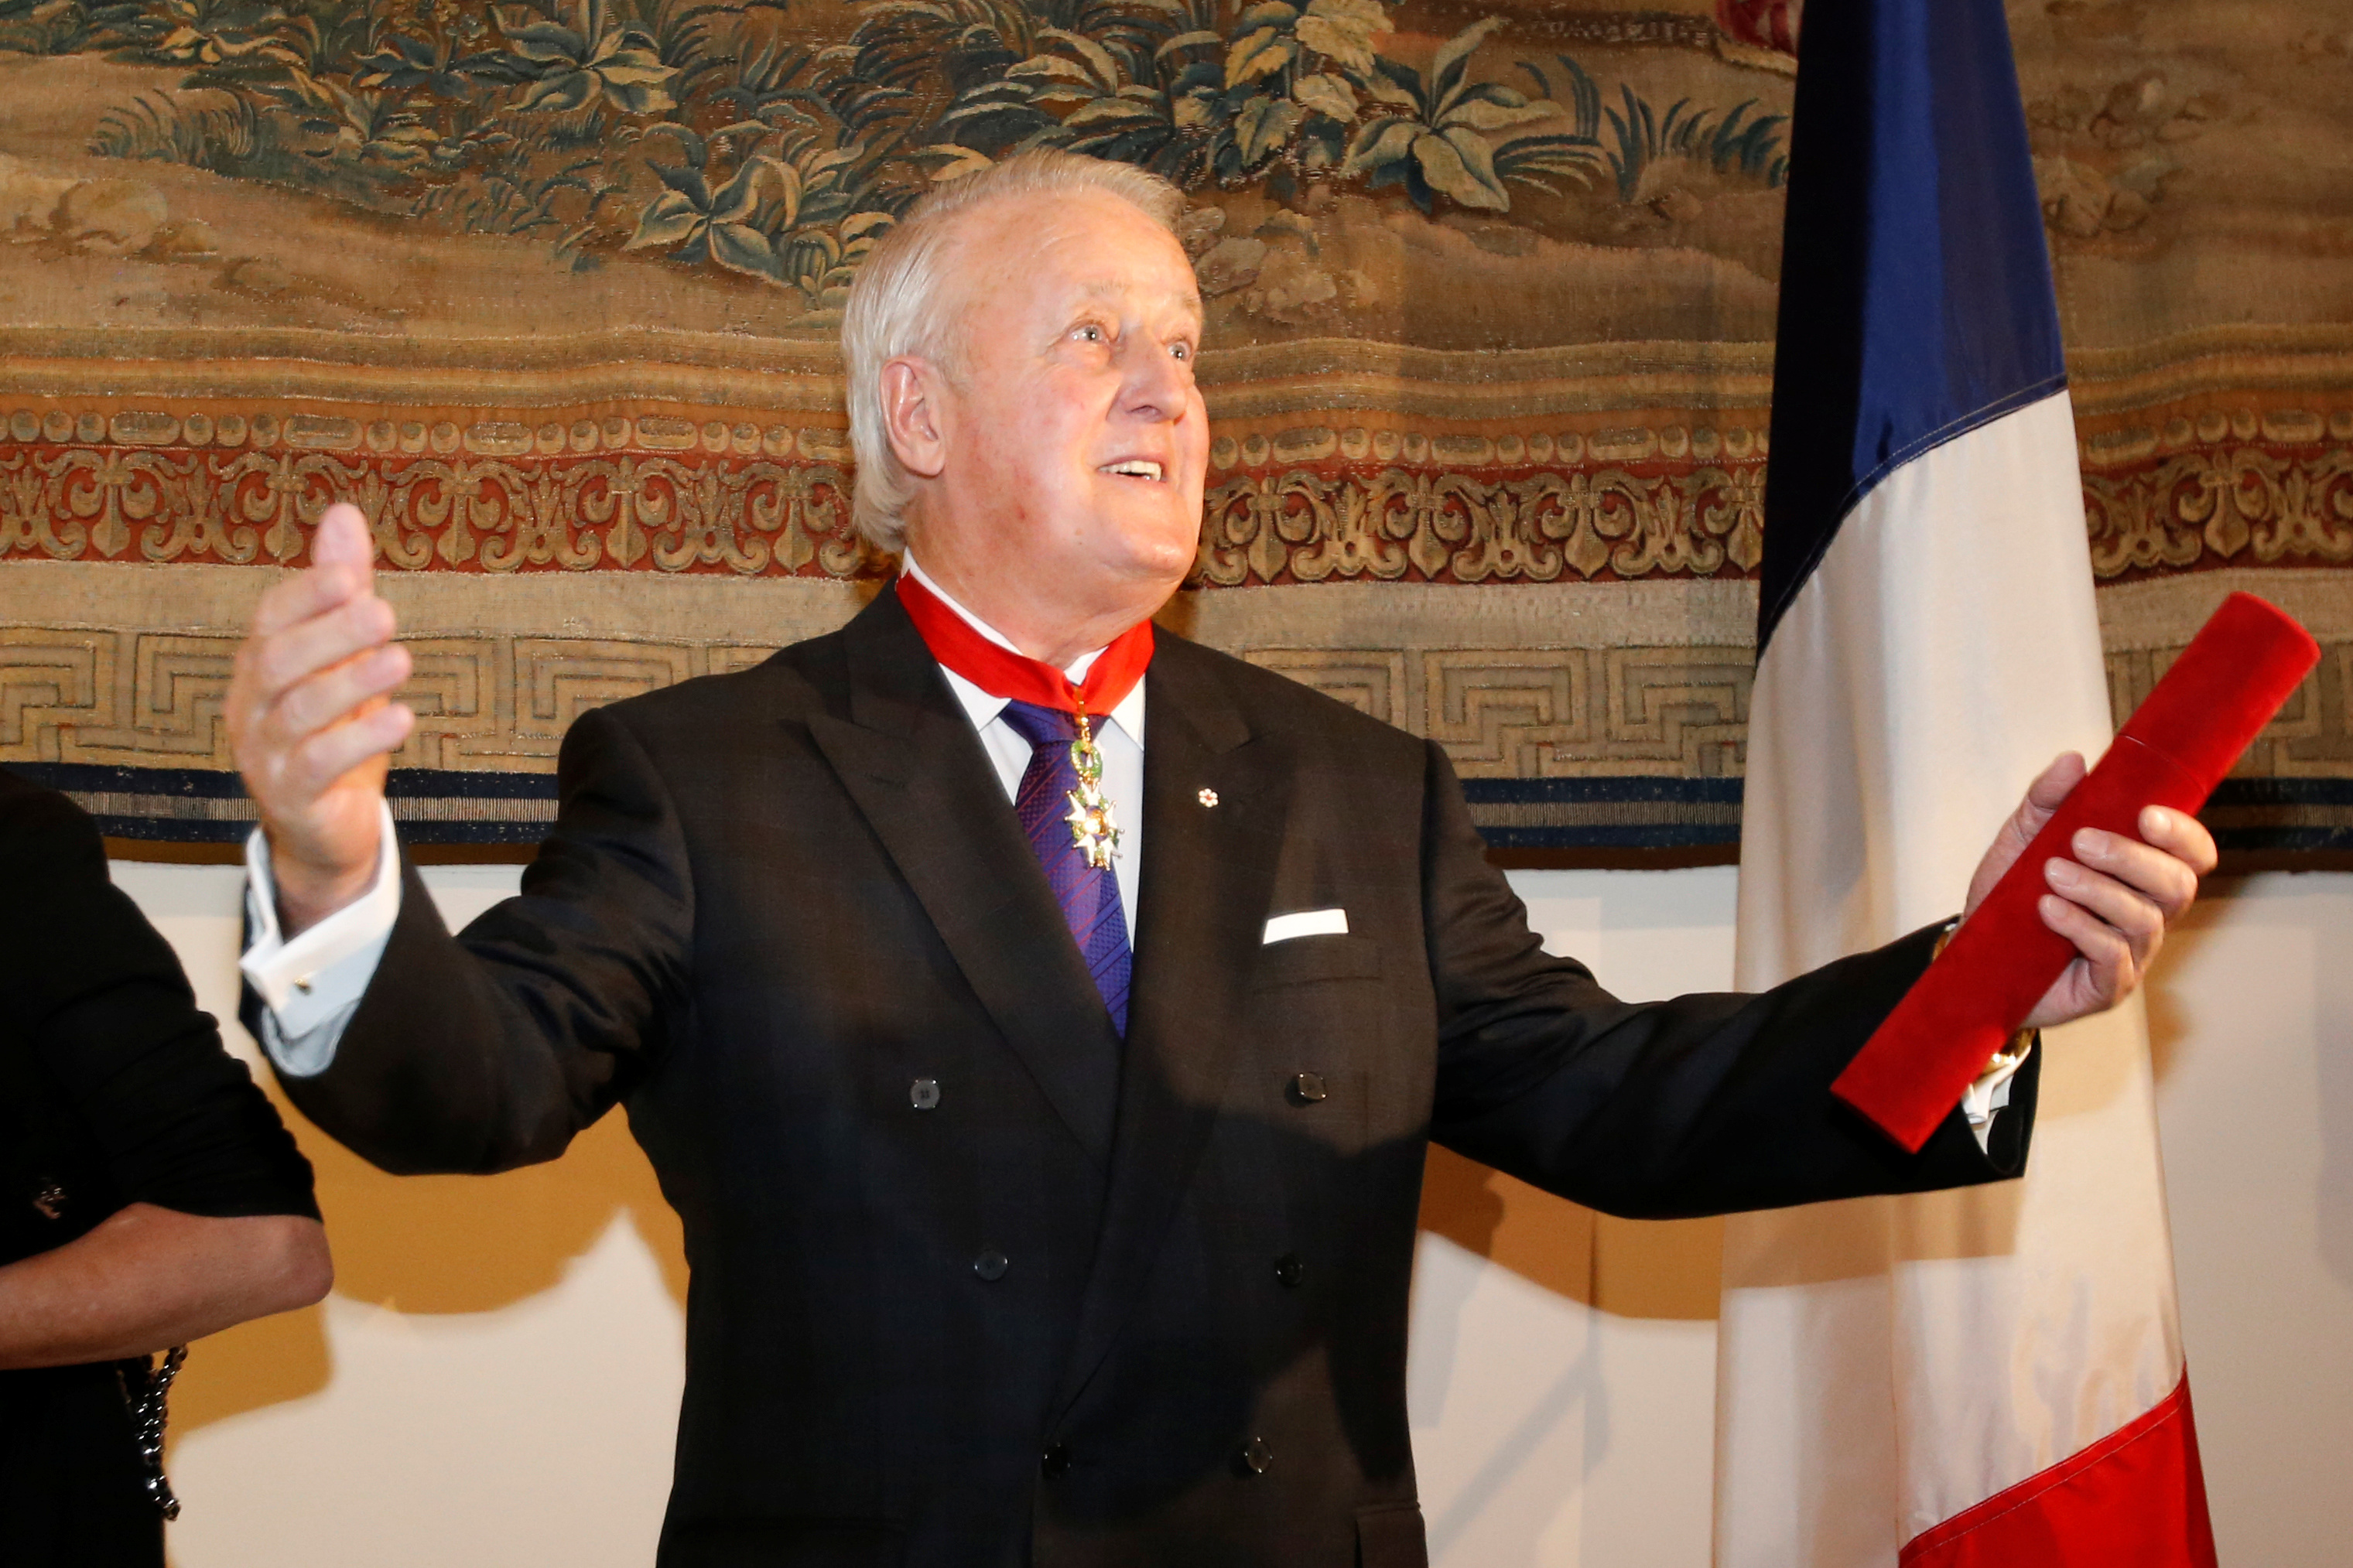 Former Canadian Prime Minister Brian Mulroney gestures after receiving the rank of Commander in the French Legion of Honour during a ceremony at the French embassy in Ottawa, Ontario, Canada, December 6, 2016. REUTERS/Chris Wattie - RC165409AEF0